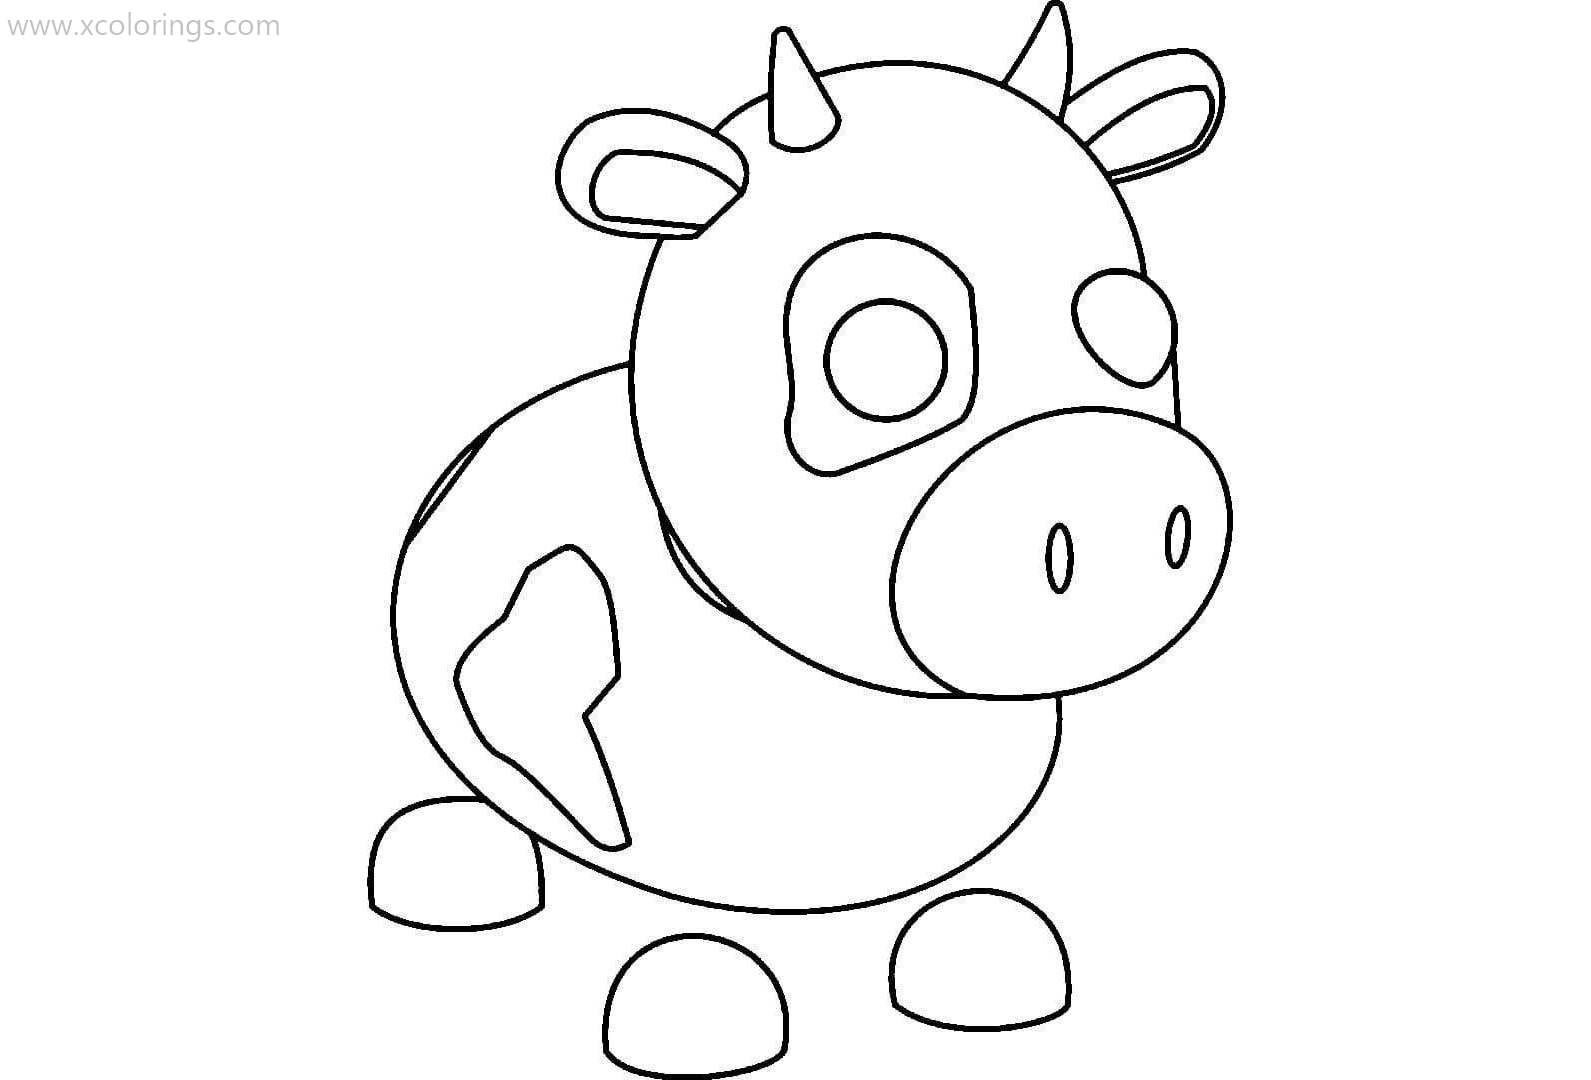 Roblox Adopt Me Coloring Pages Cow Pets Drawing Cow Coloring Pages Unicorn Coloring Pages